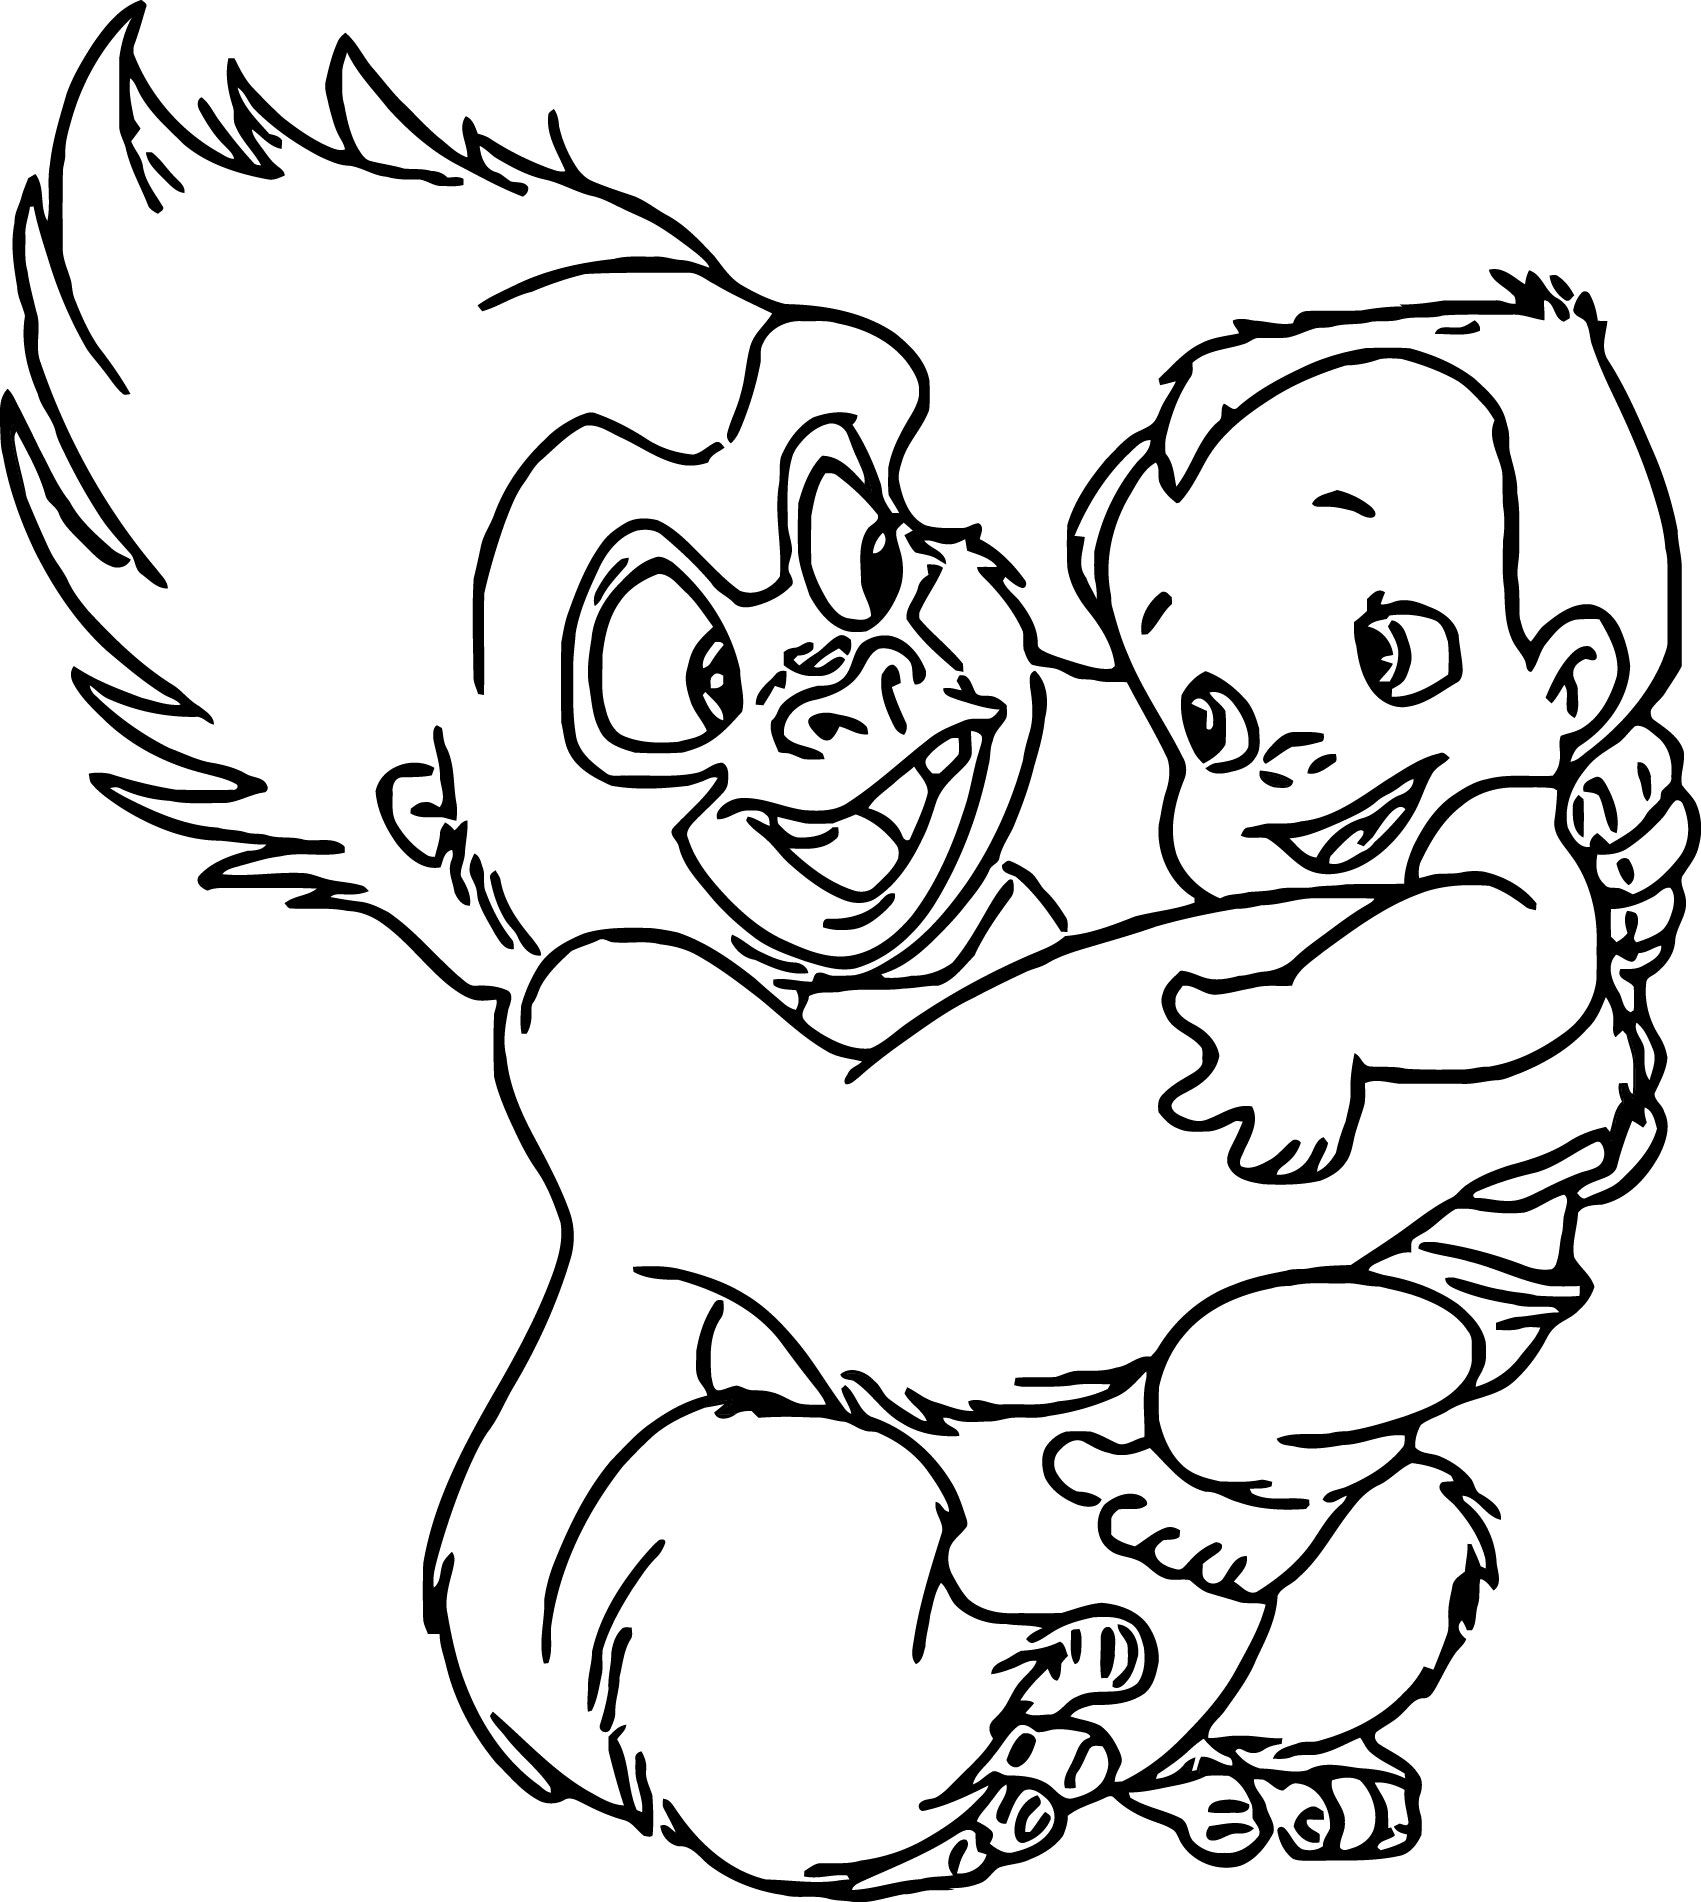 Disney Baby Tarzan Coloring Pages